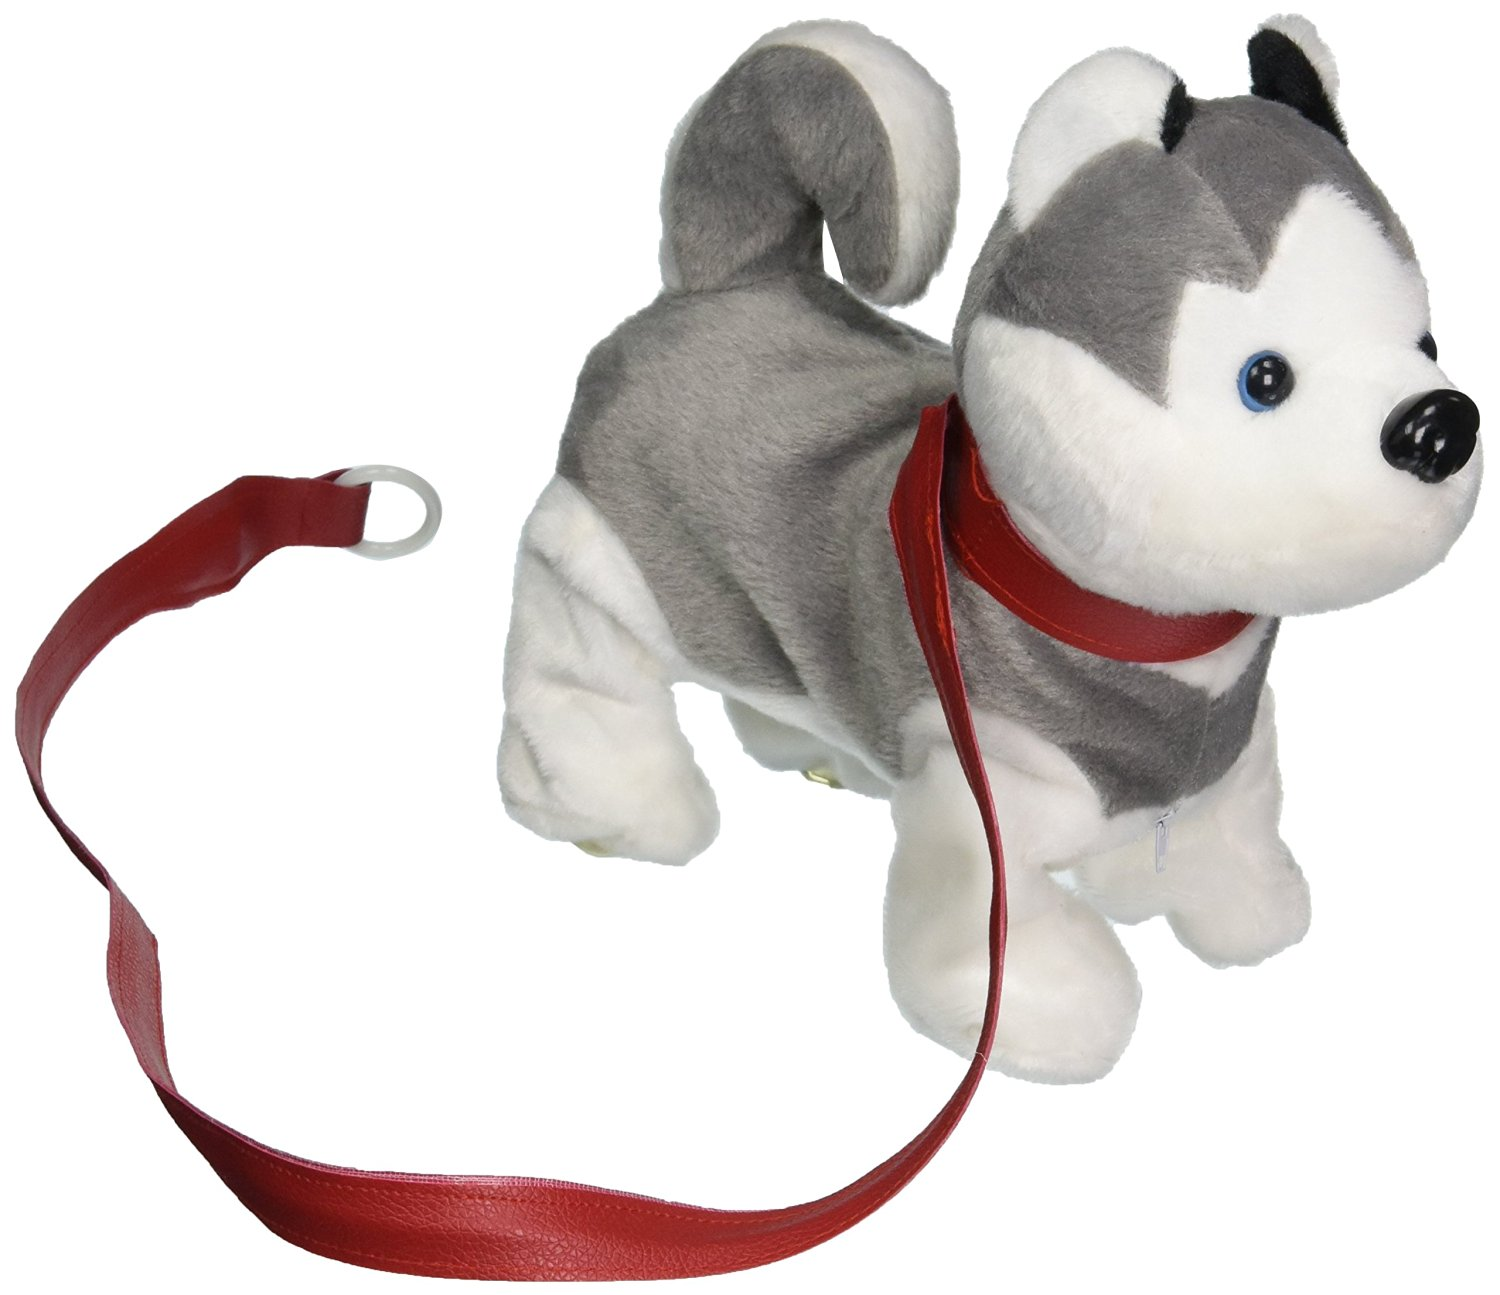 Velocity Toys VT My Dancing Puppy 'Husky Puppy' Walk Along Toy Stuffed Plush Dog, Realistic Dancing & Walking Actions with Music (Colors May Vary)